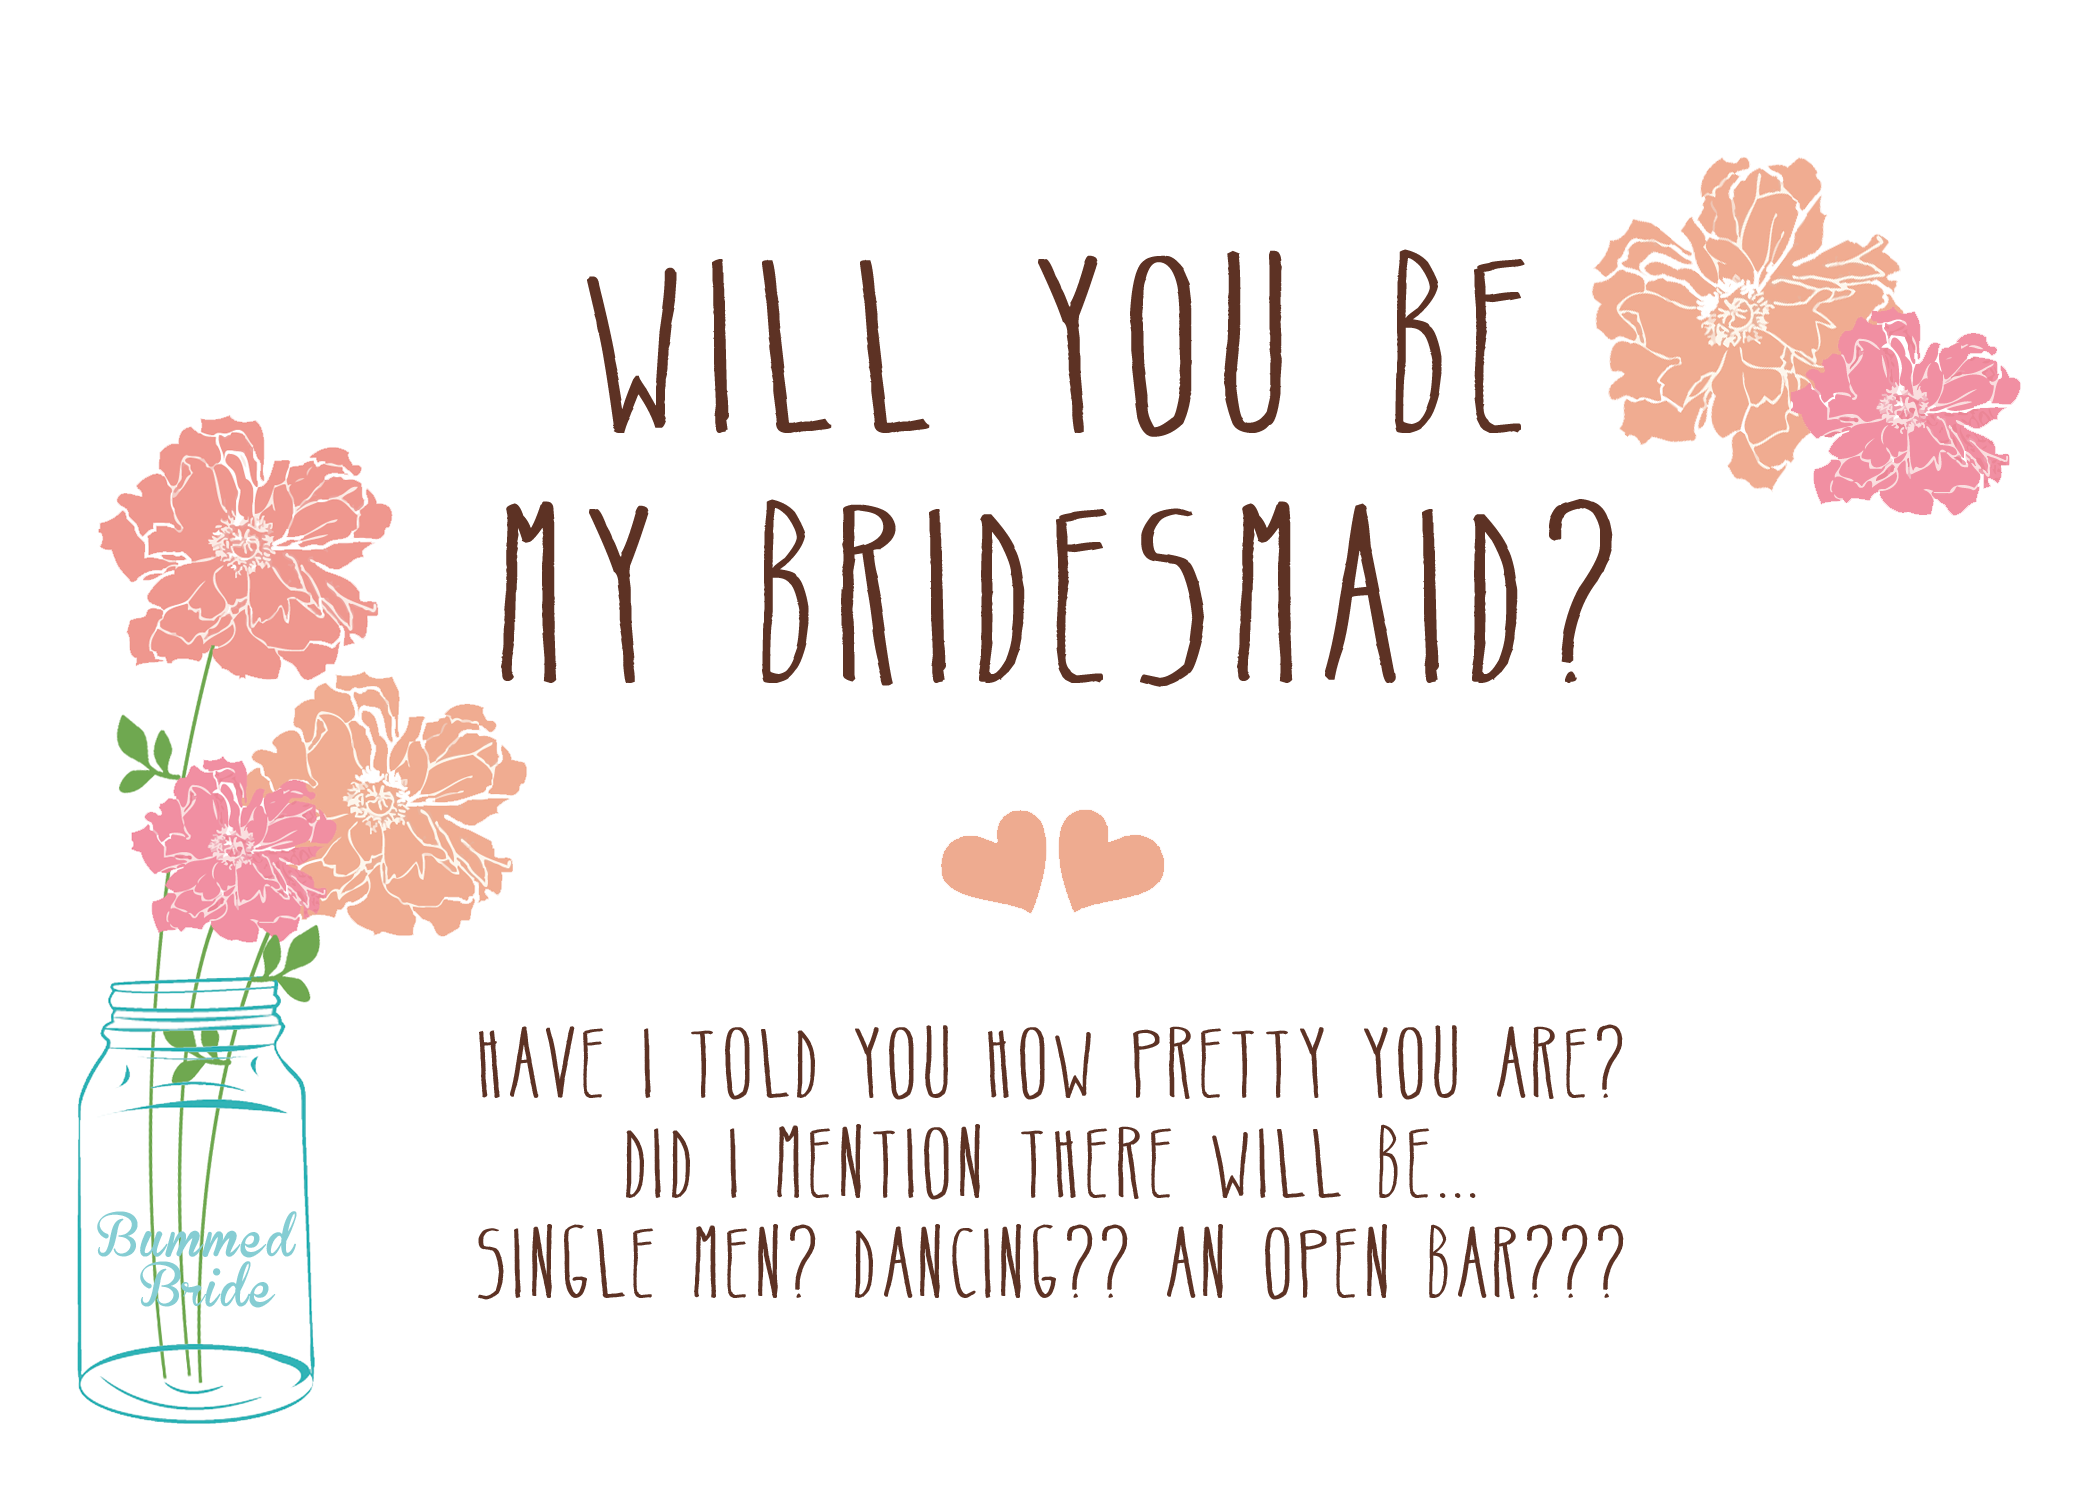 Free Printable: Will You Be My Bridesmaid?